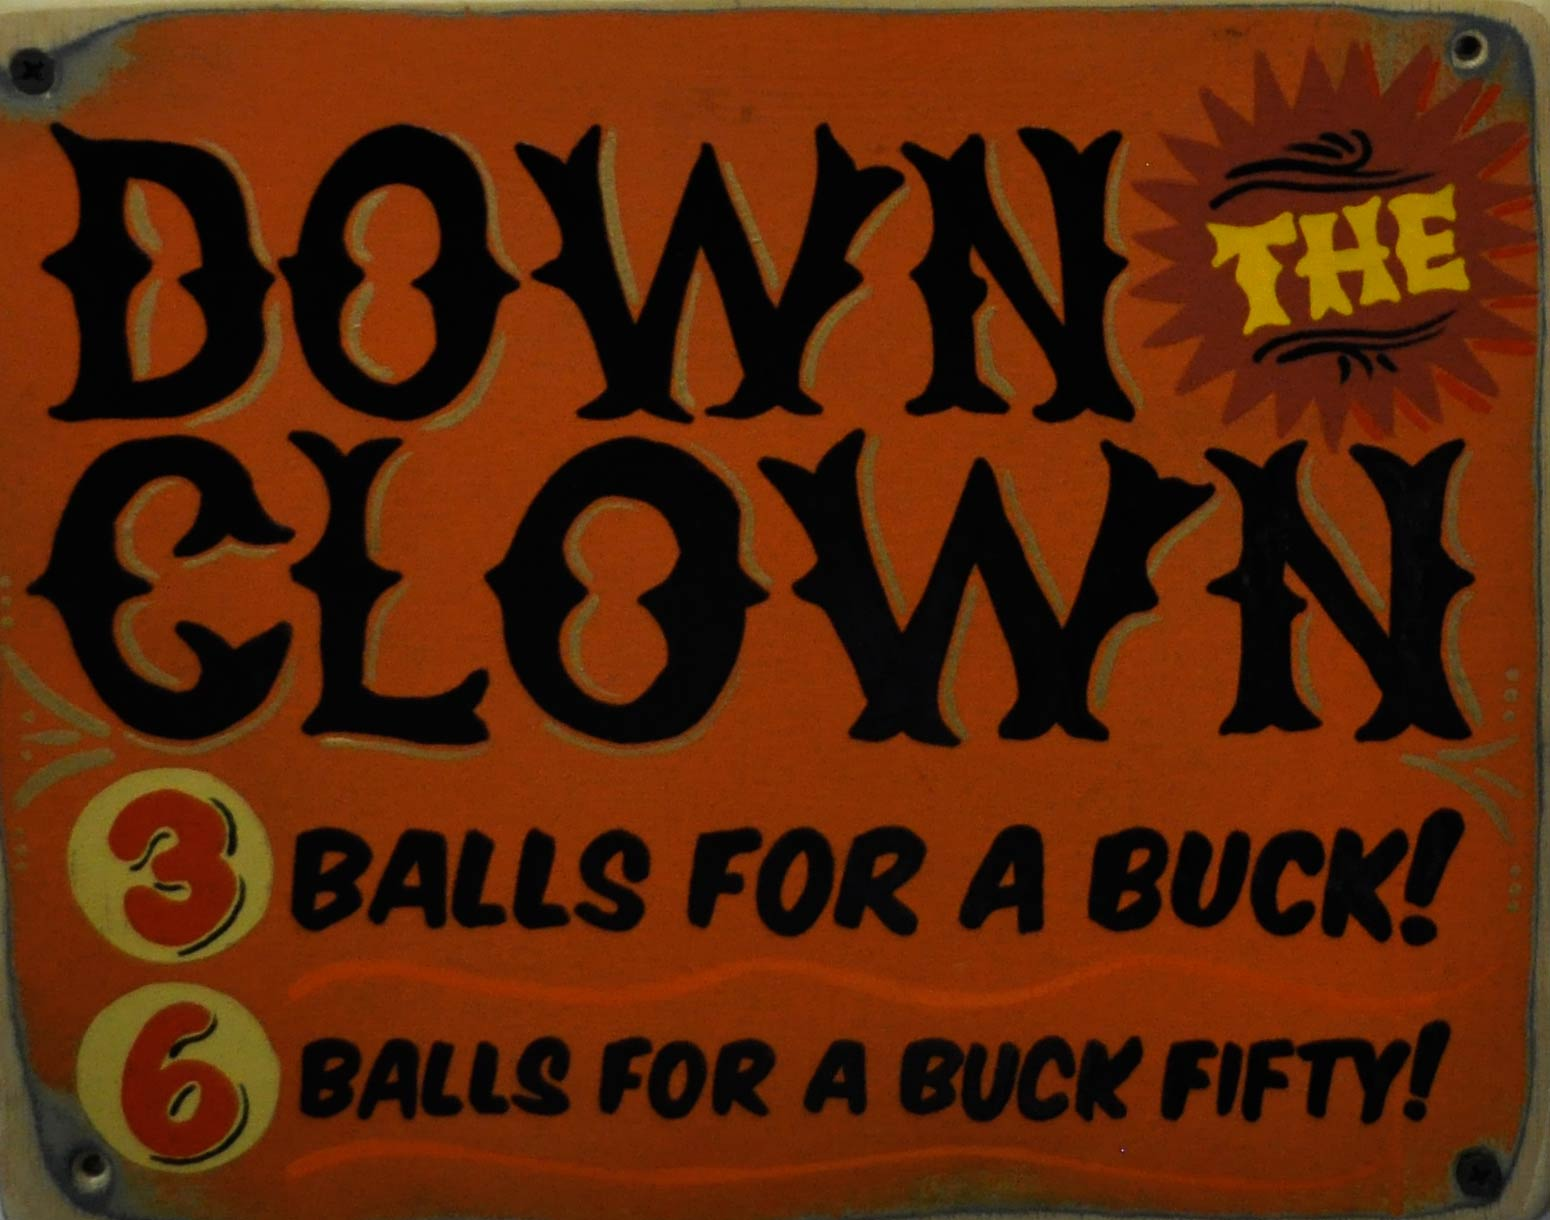 Down-the-clown_original